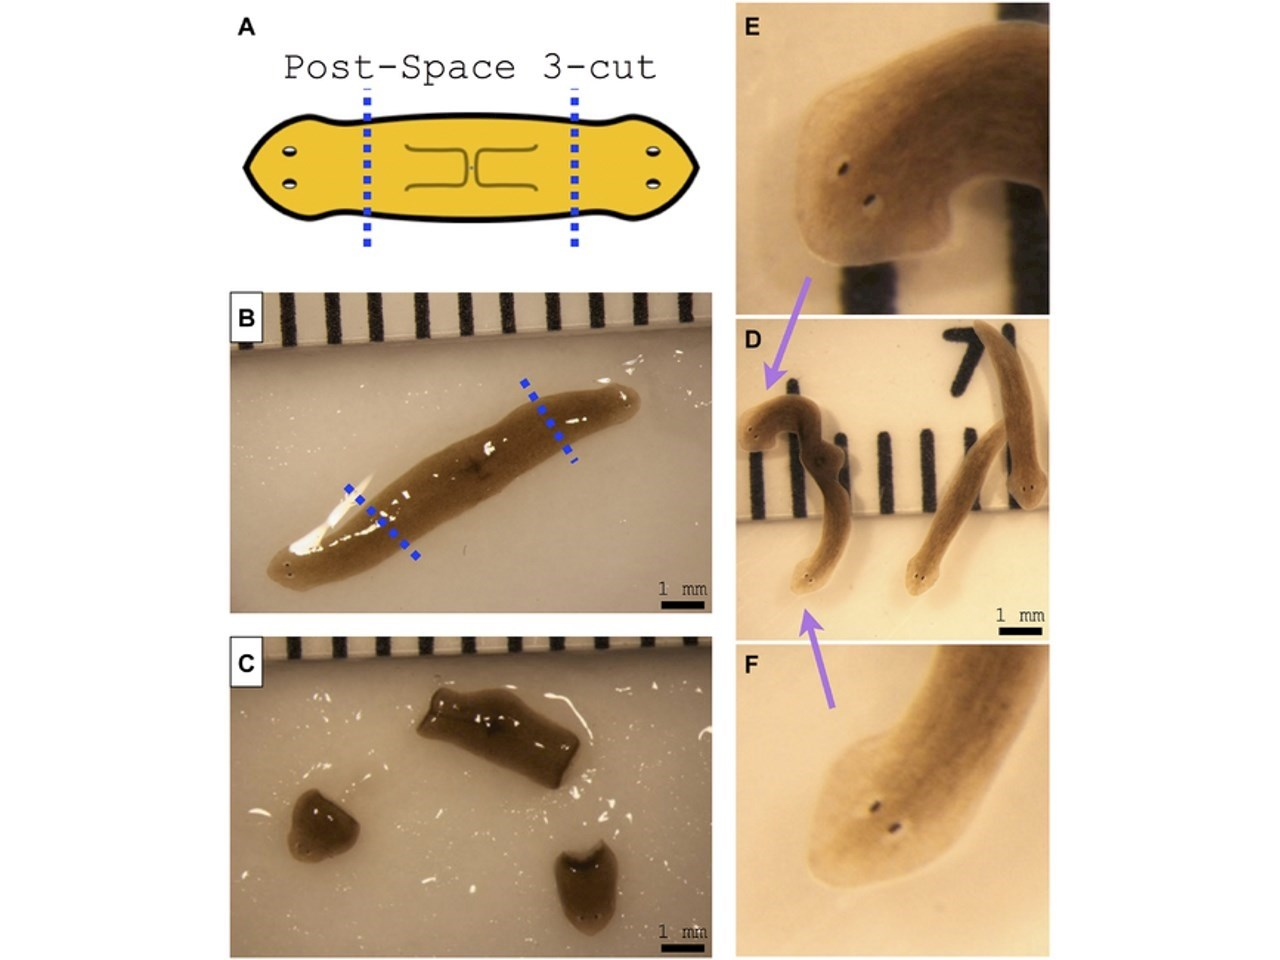 Amputation of double-headed worm from space results in double-headed morphology